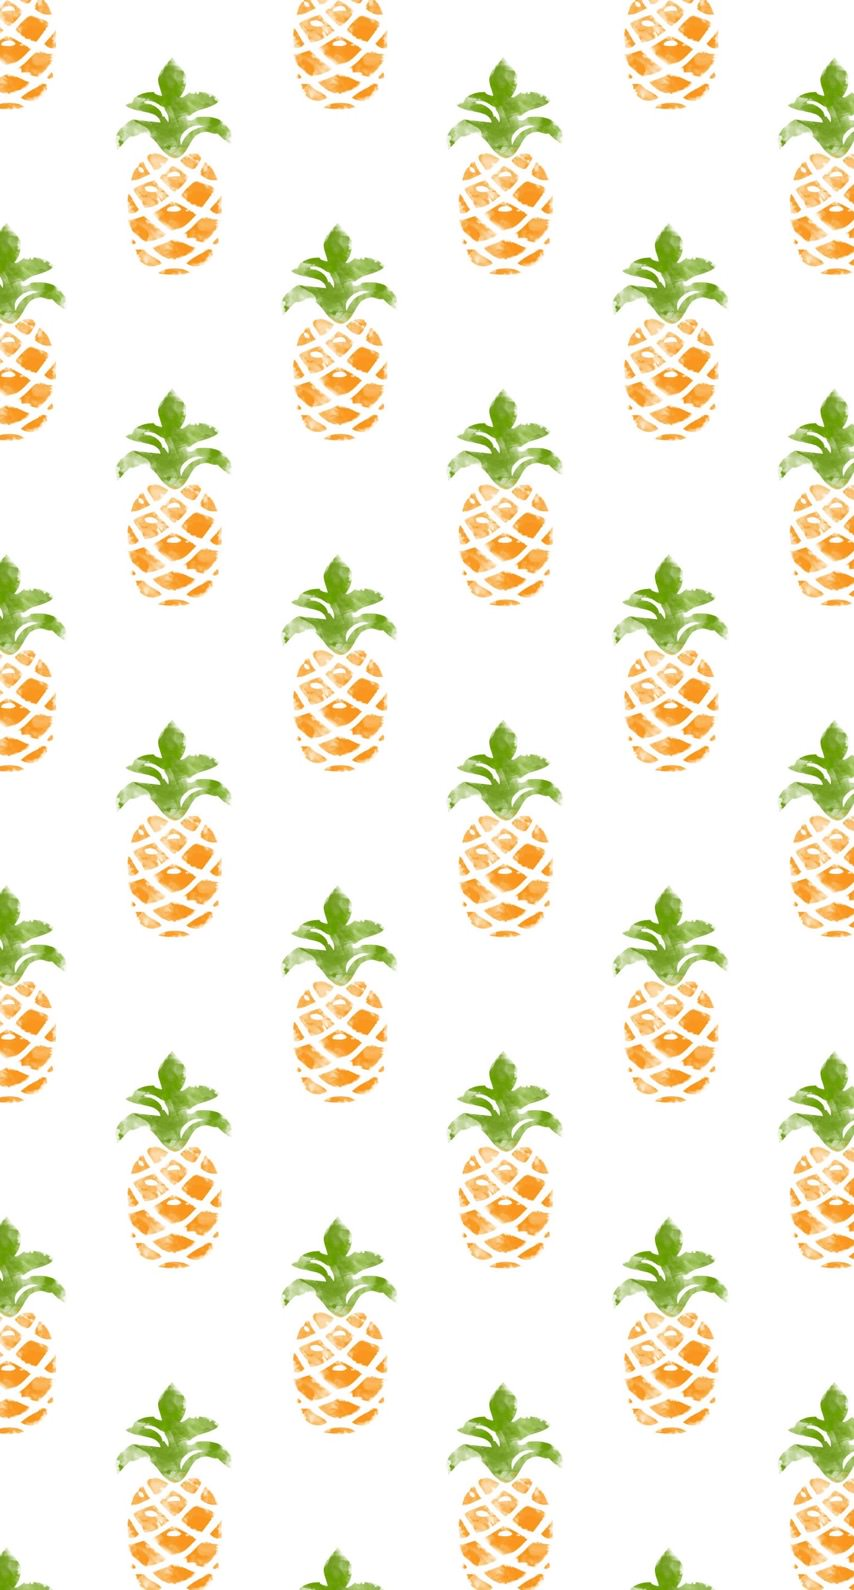 Wallpaper iphone pineapple - Iphone 7 Wallpaper